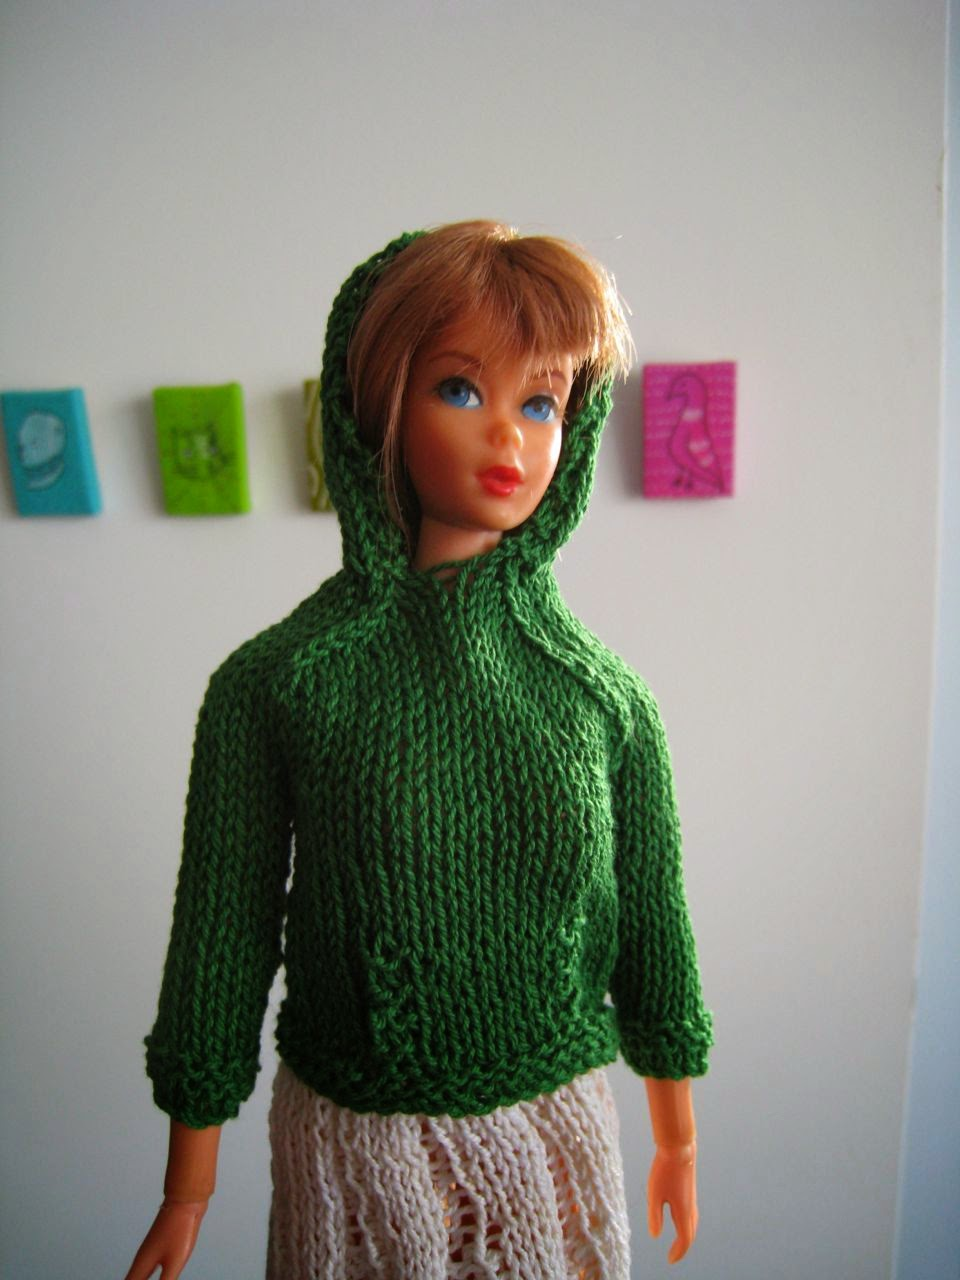 Barbie Knitting Patterns : Best Barbie Knits: Barbie Kangaroo Jacket in #10 Crochet Cotton